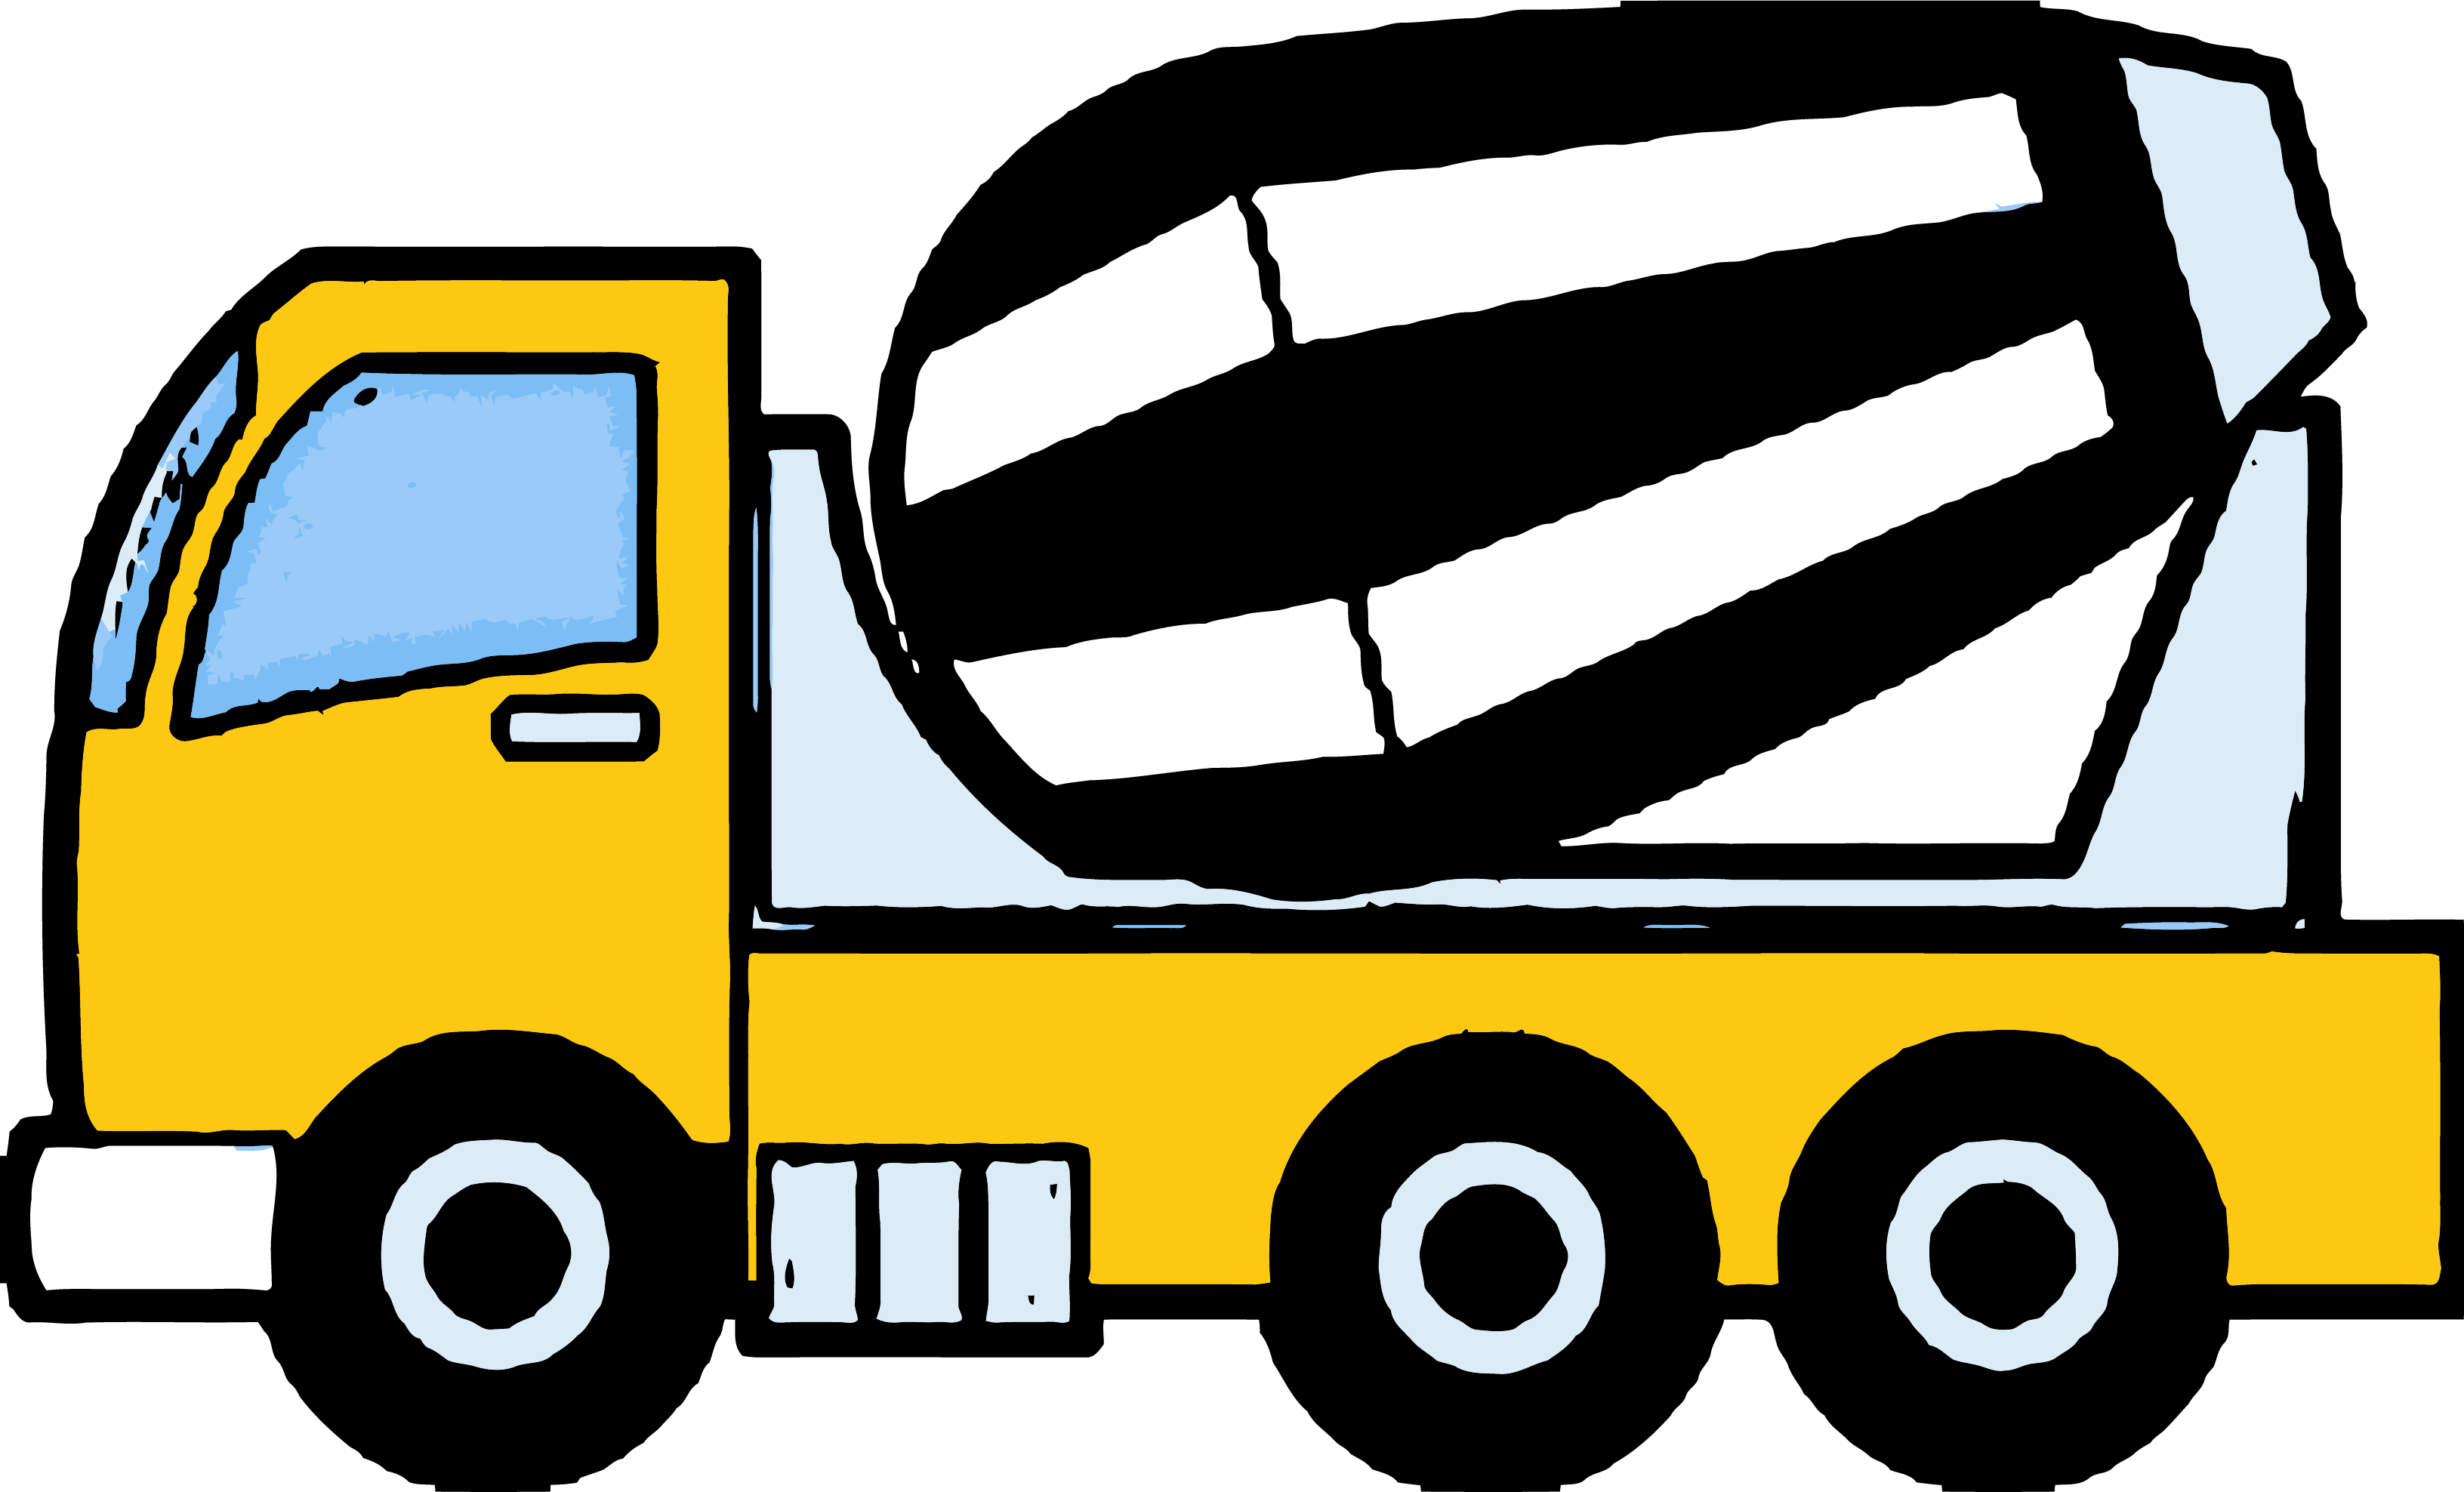 Cement truck clipart vector royalty free Cement Truck Construction Clipart Png – Clipartly.com vector royalty free